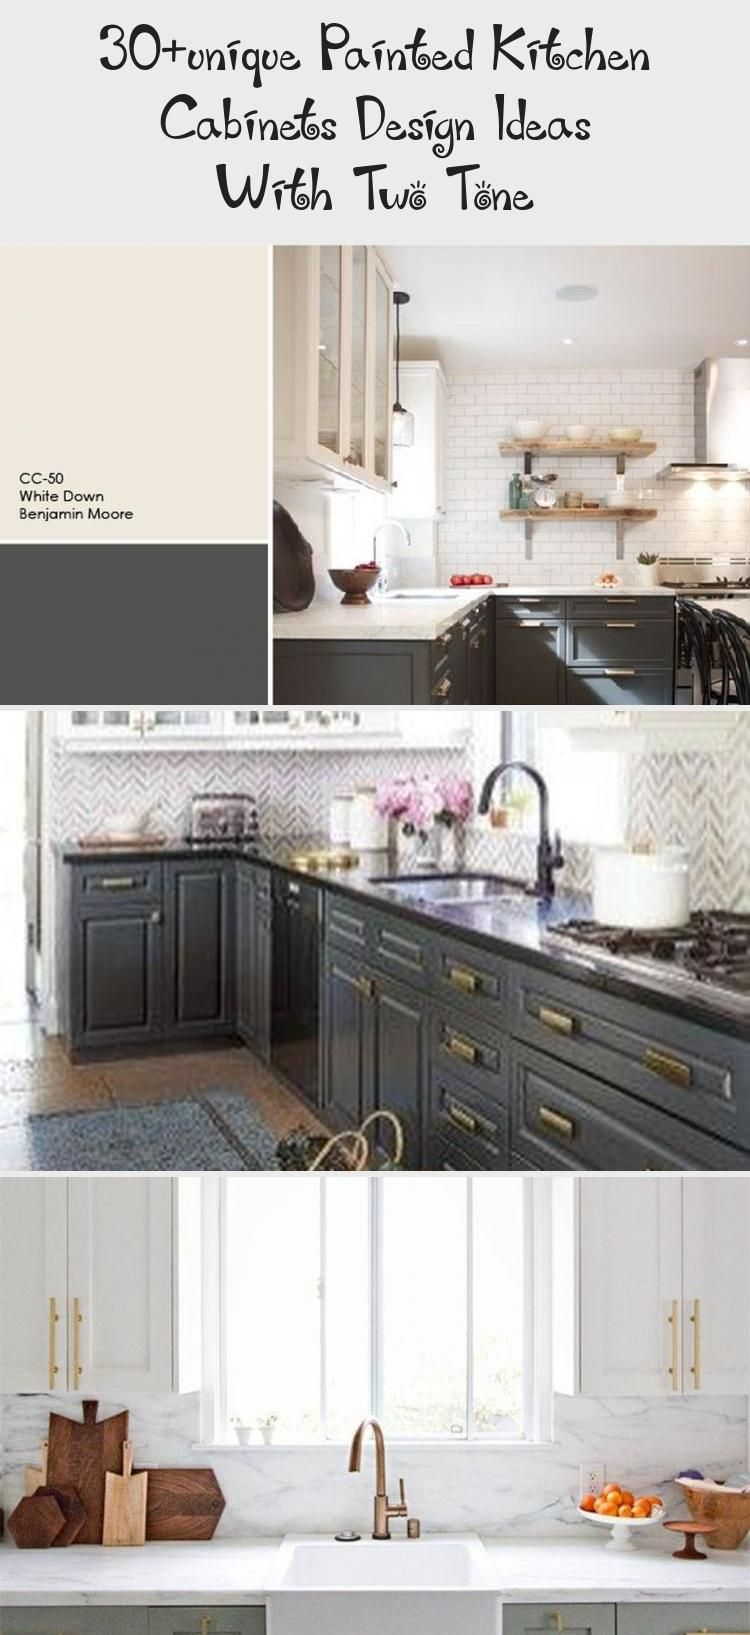 30+unique Painted Kitchen Cabinets Design Ideas With Two ...